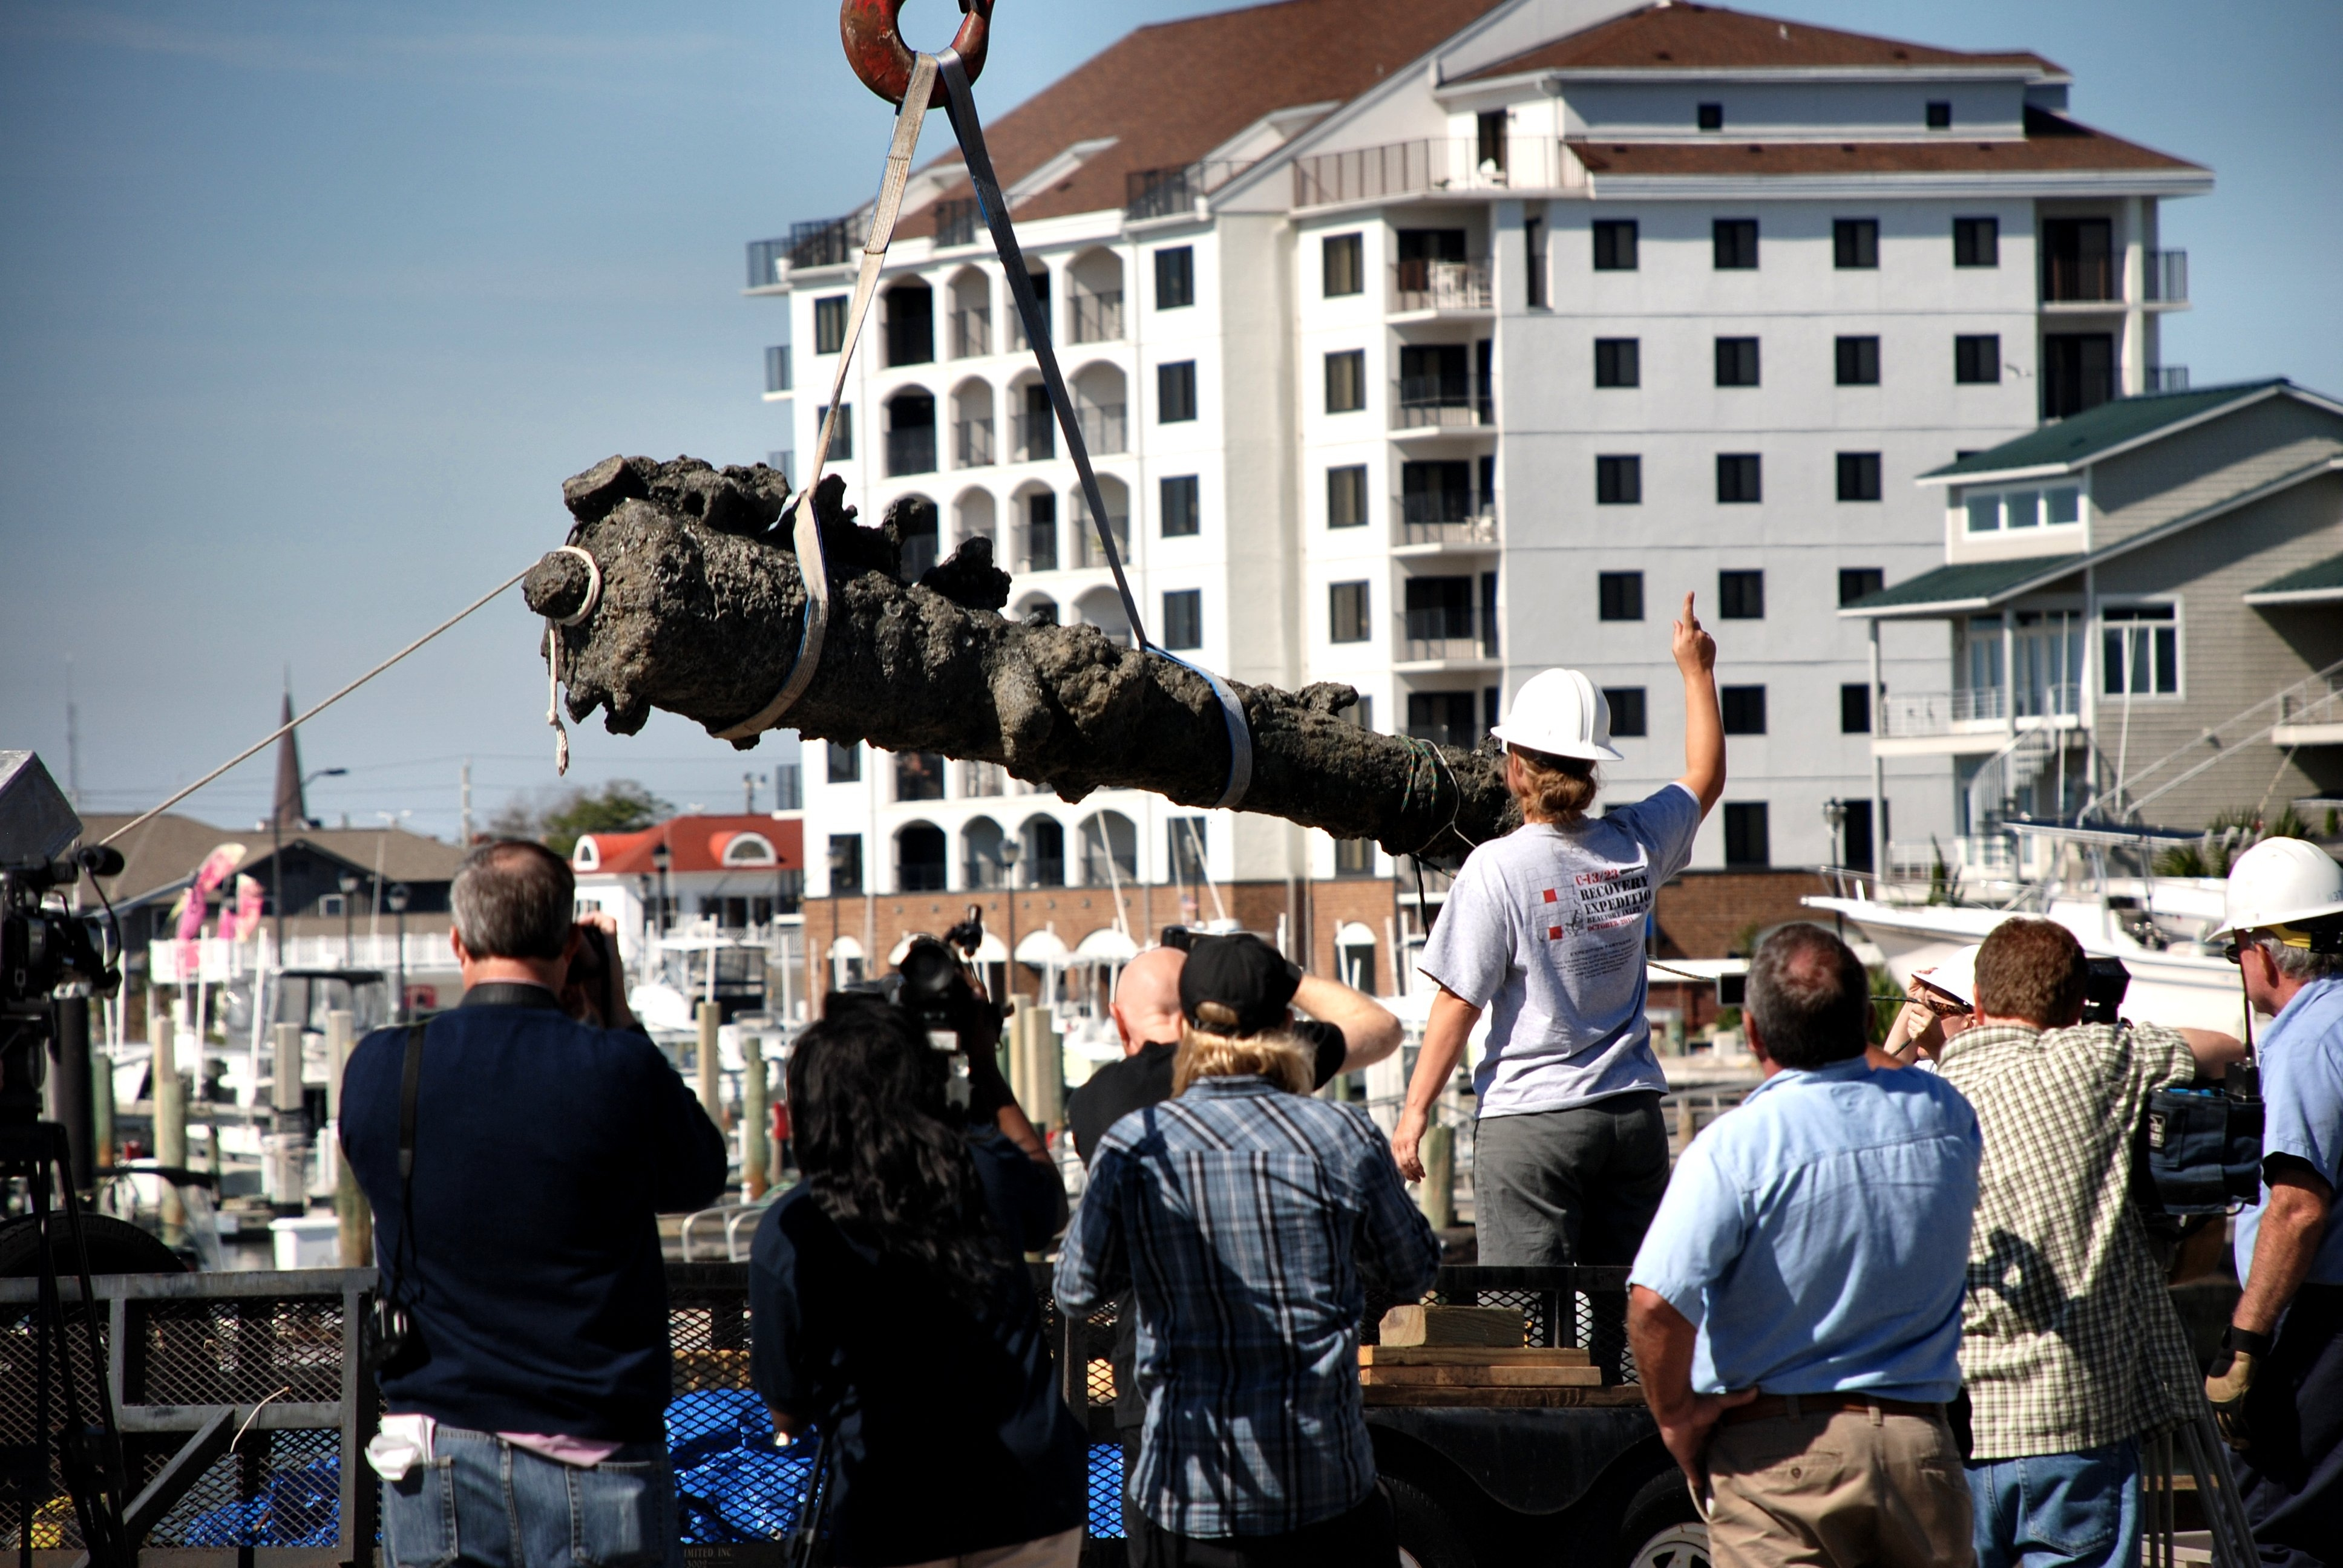 A cannon is offloaded onto land after being recovered from Blackbeard's Queen Anne's Revenge